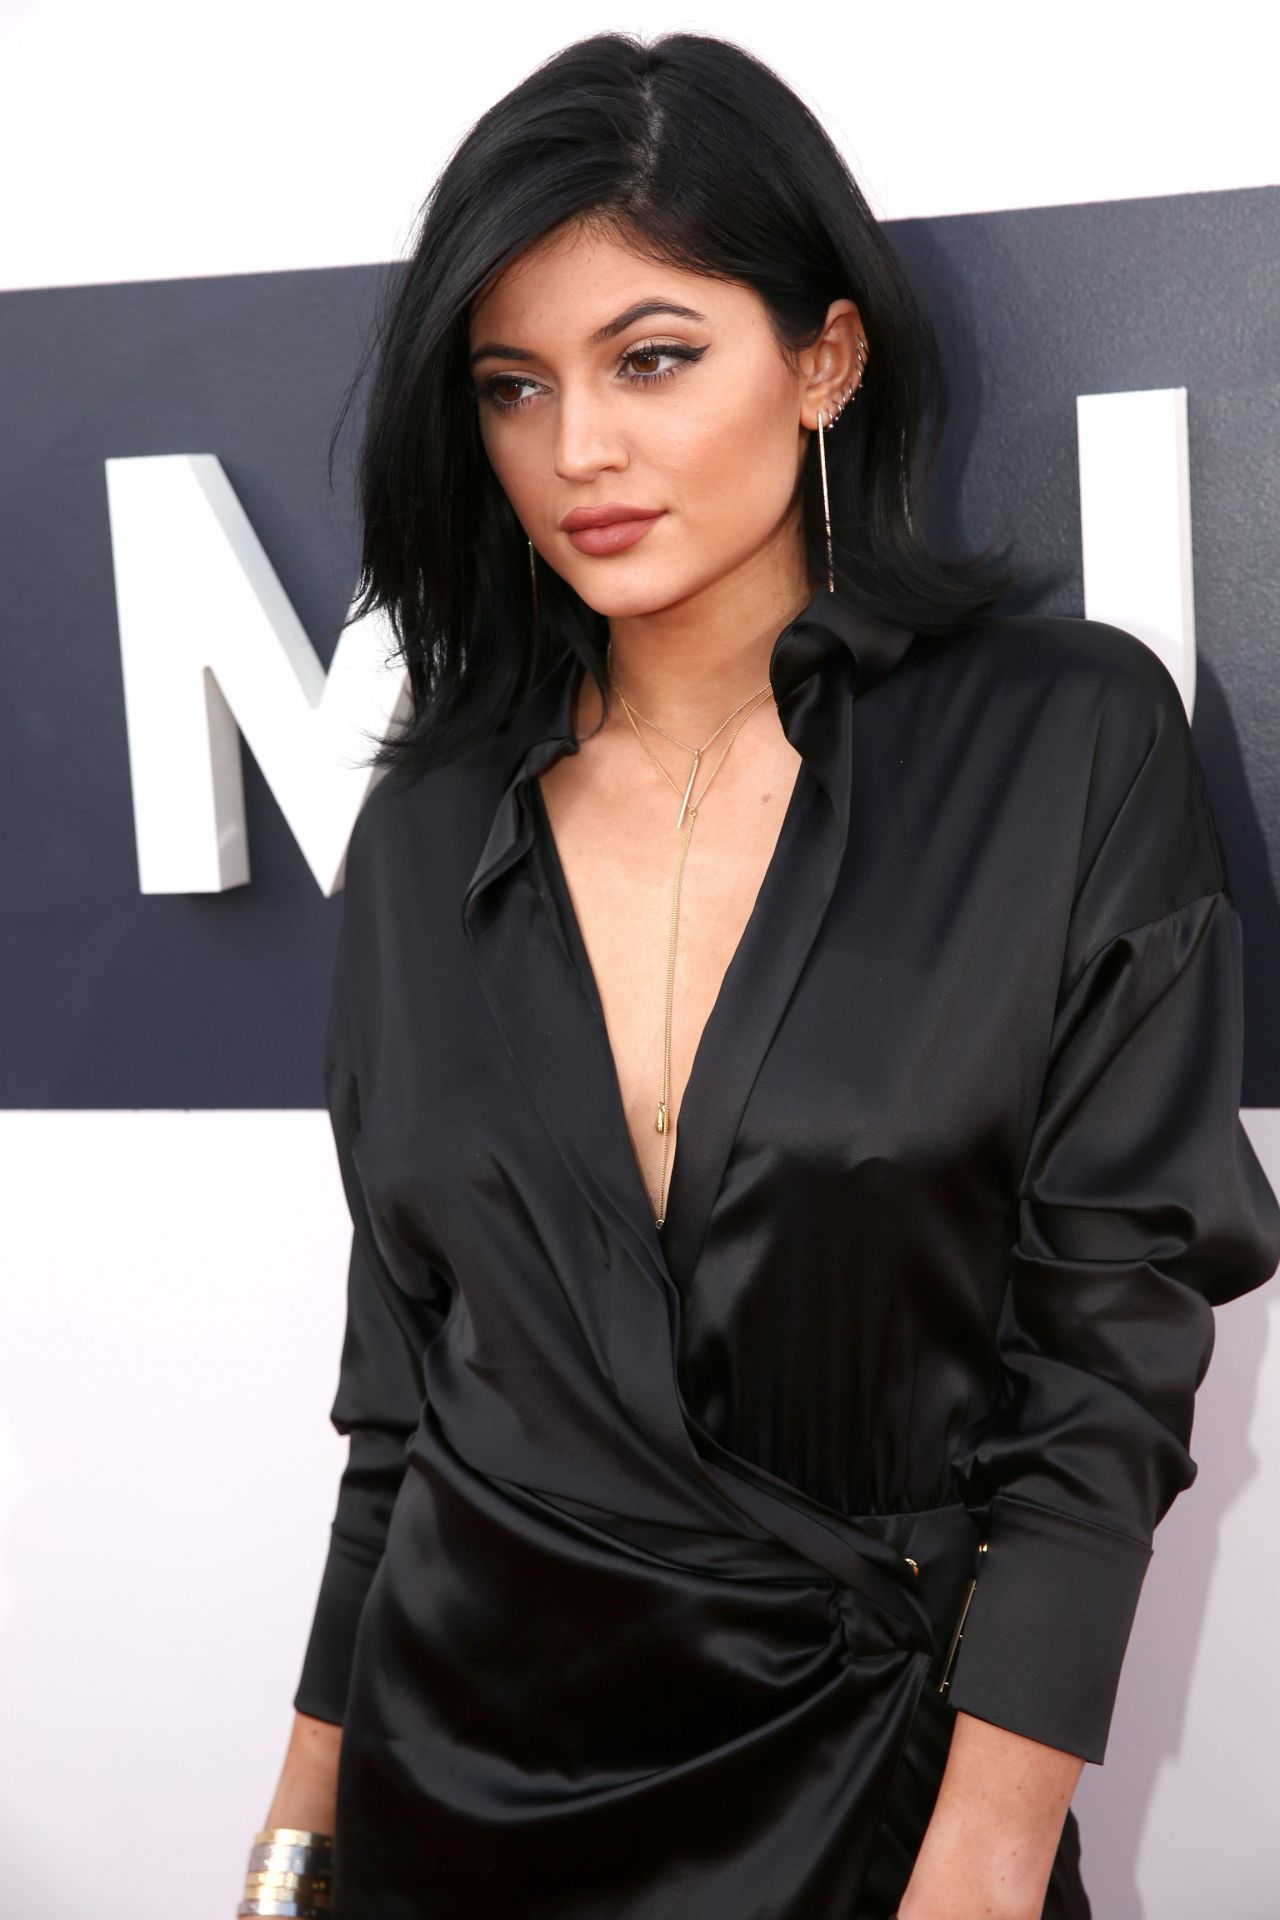 Kylie Jenner Lip Kit Are Colourpop Lipsticks: 2014 MTV Video Music Awards In Inglewood